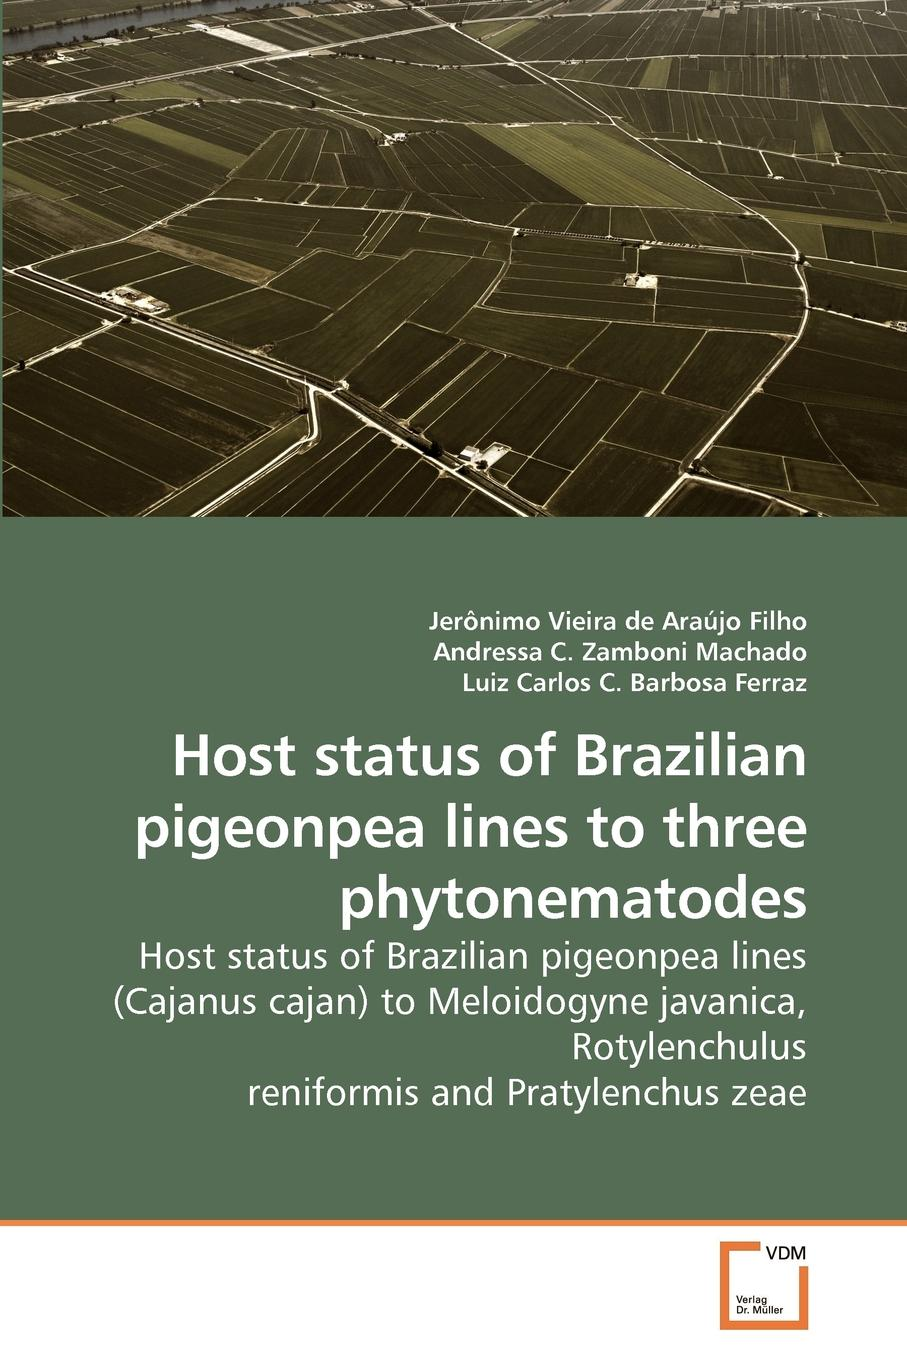 Jerônimo Vieira de Araújo Filho Host status of Brazilian pigeonpea lines to three phytonematodes fractured lines out of line 4